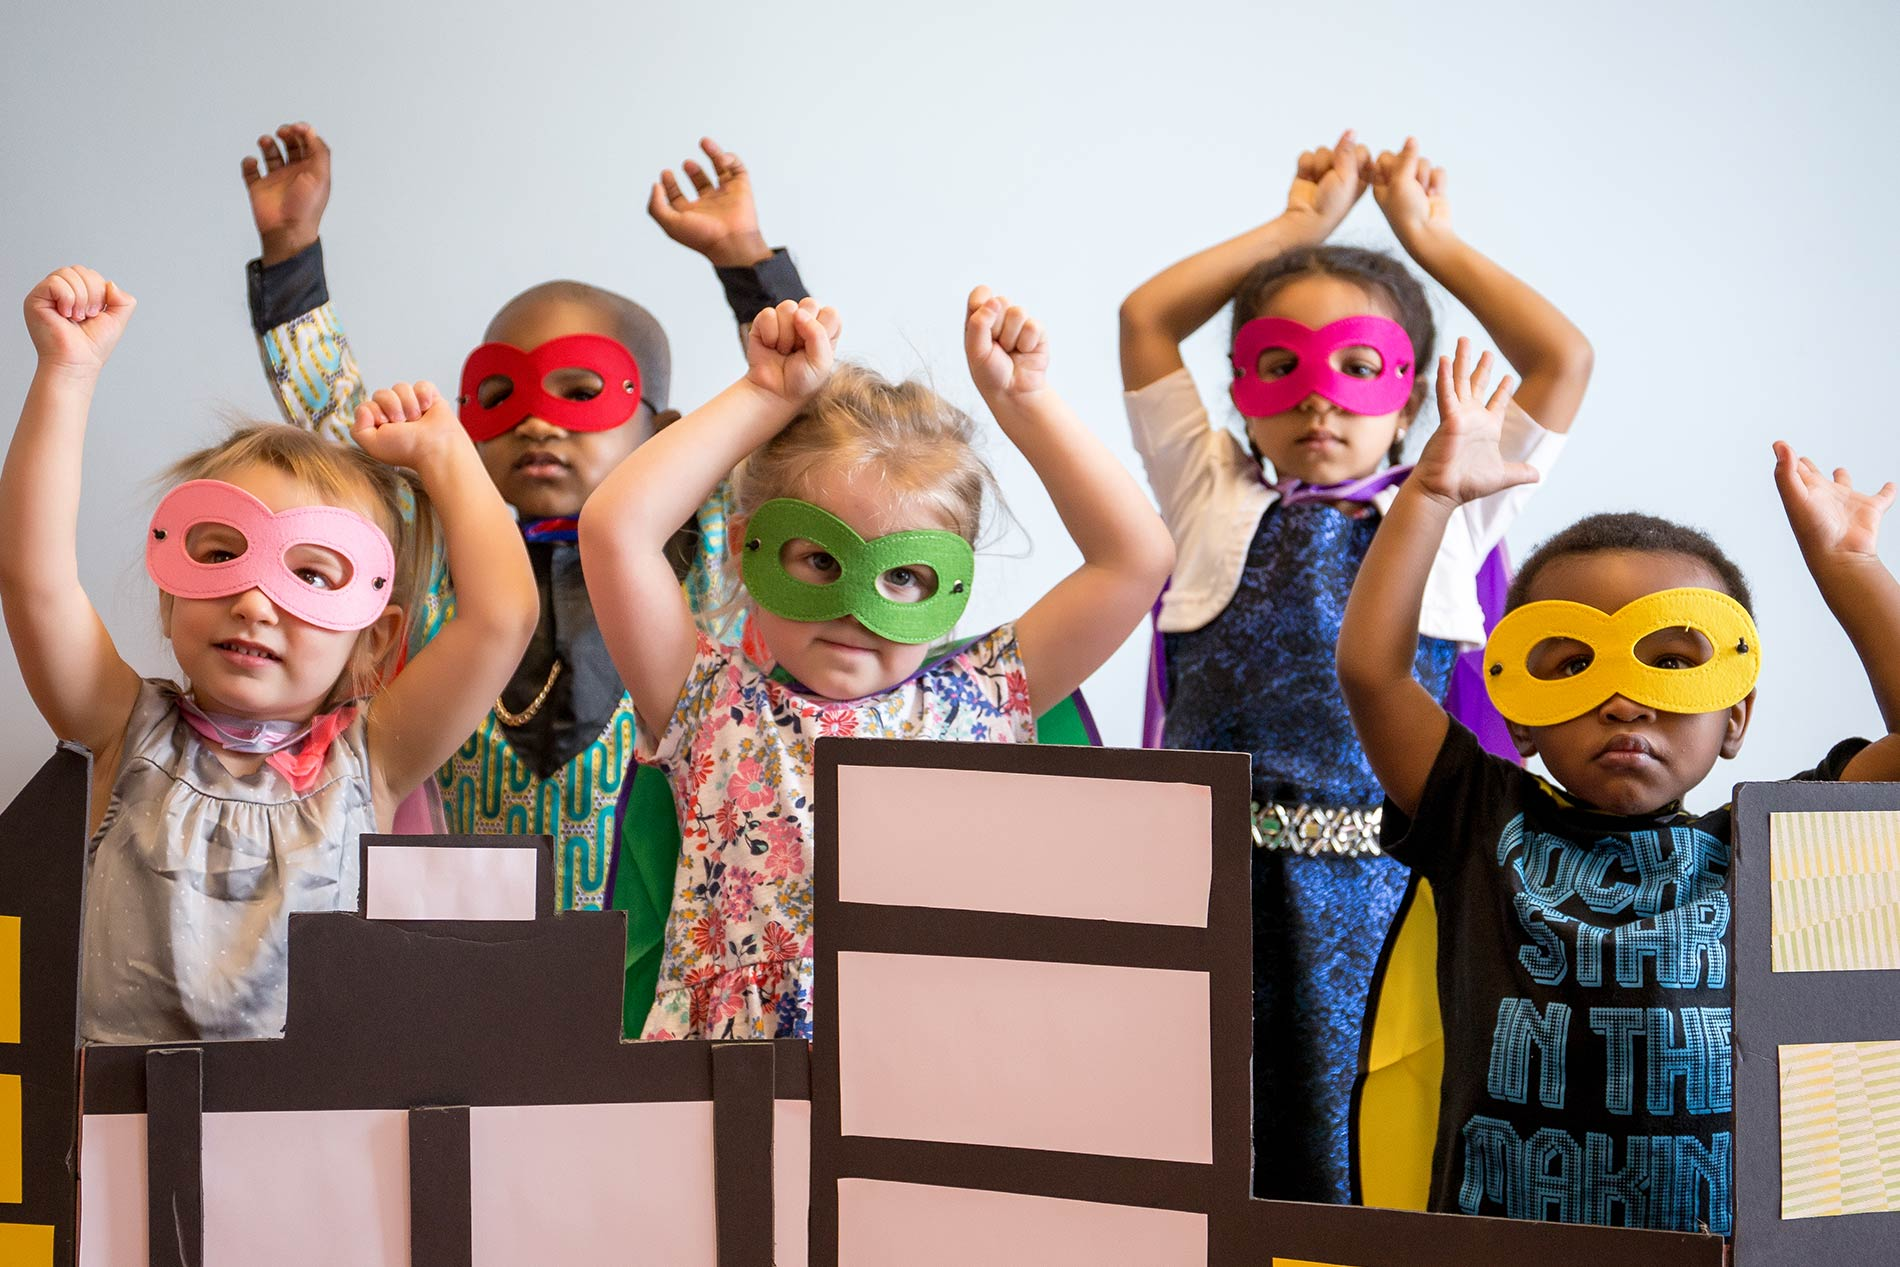 CityTots Playgroup  CityTots is a Community Playgroup for Children 0-5 years of age.  Learn more here.